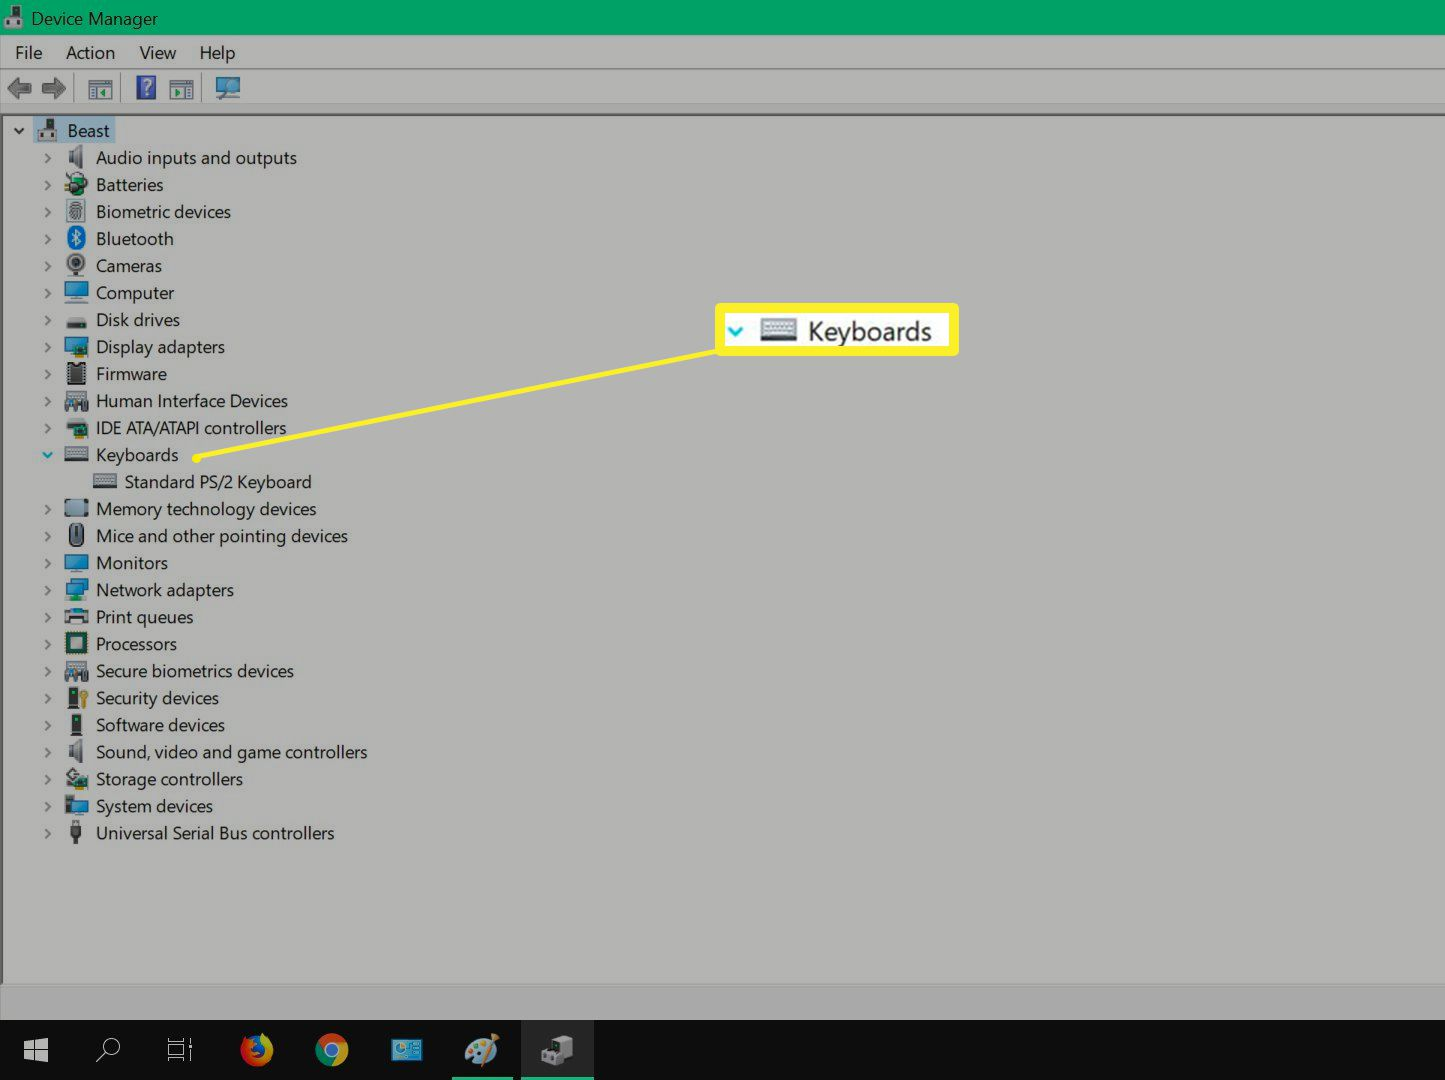 Device manager keyboards option